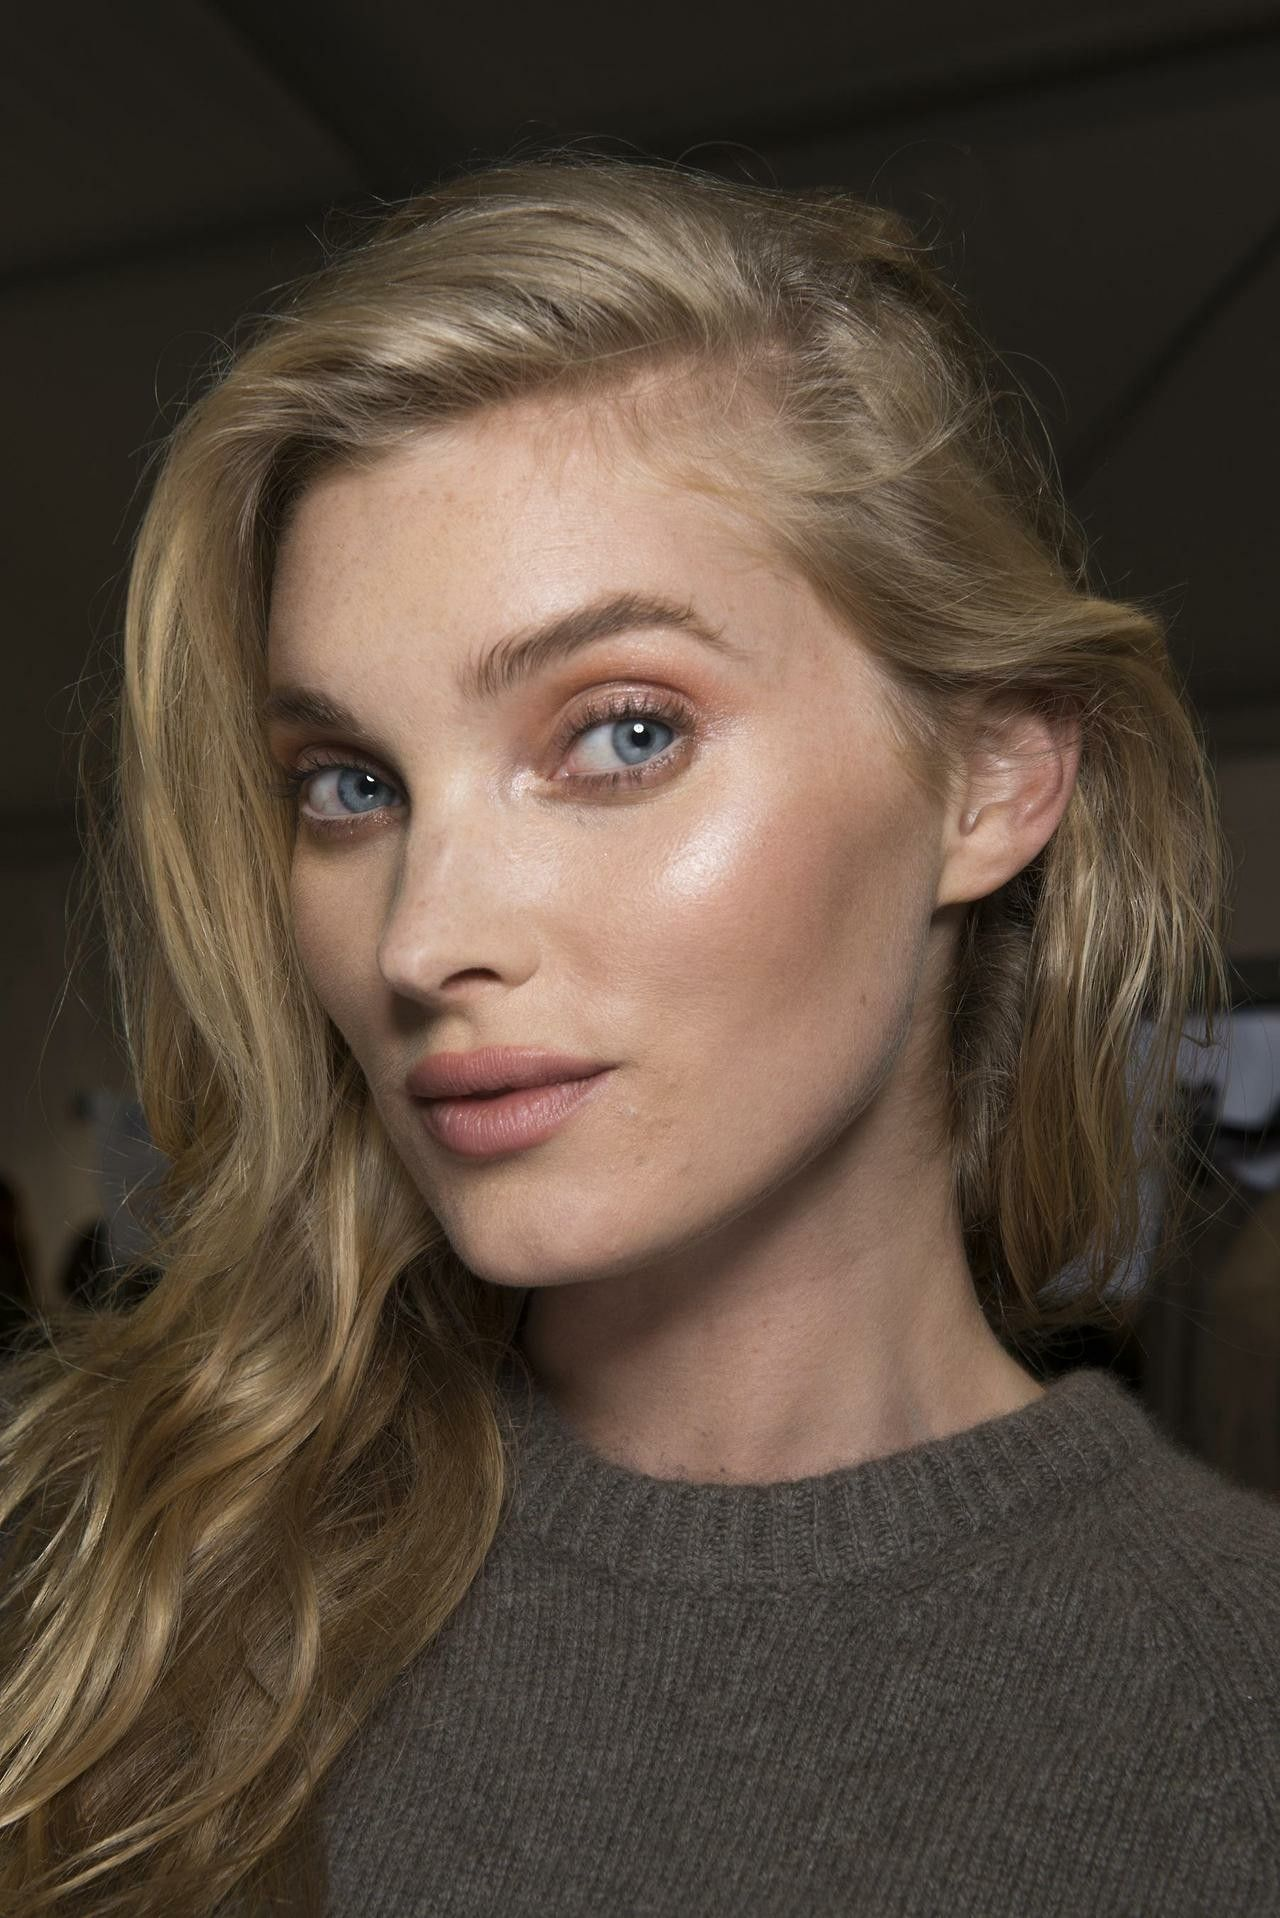 Pin by Robin on Beauty (With images) Elsa hosk, Fresh